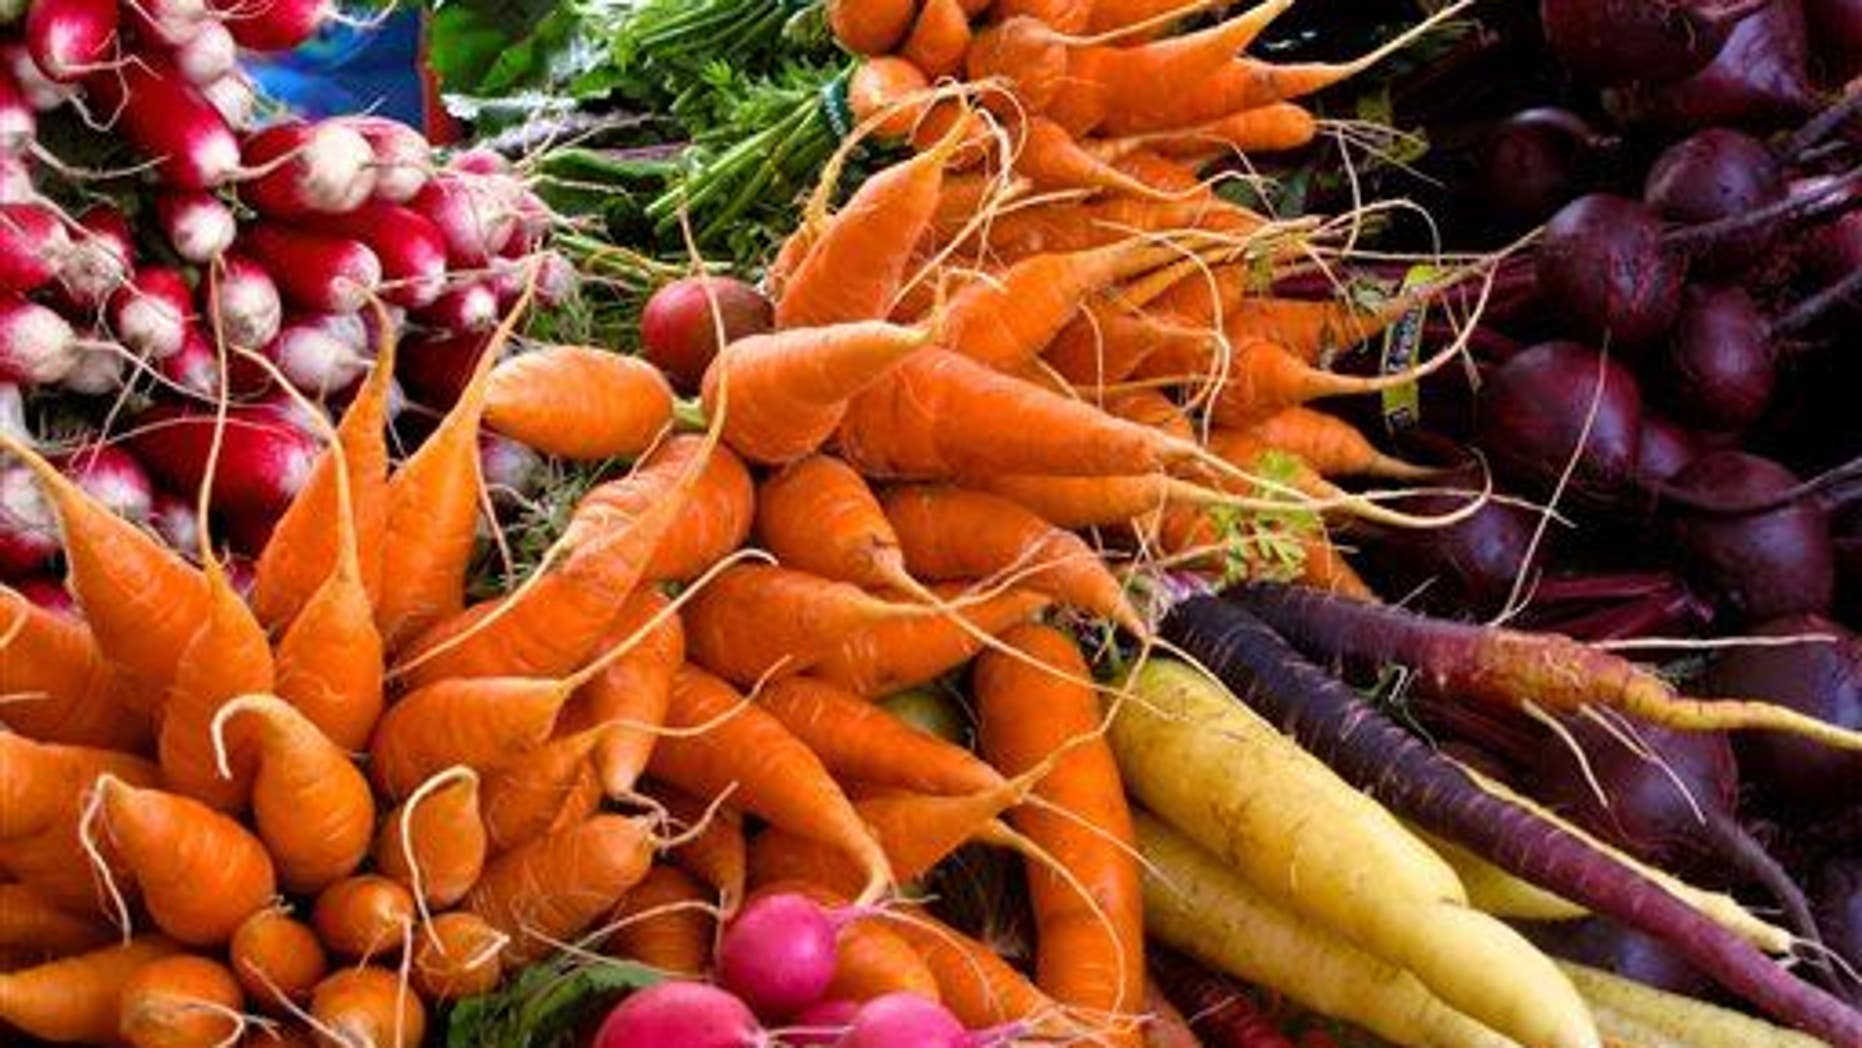 This photo taken on Oct. 5, 2013, shows radishes, carrots, turnips, and beets at a farmers market near Langley, Wash.